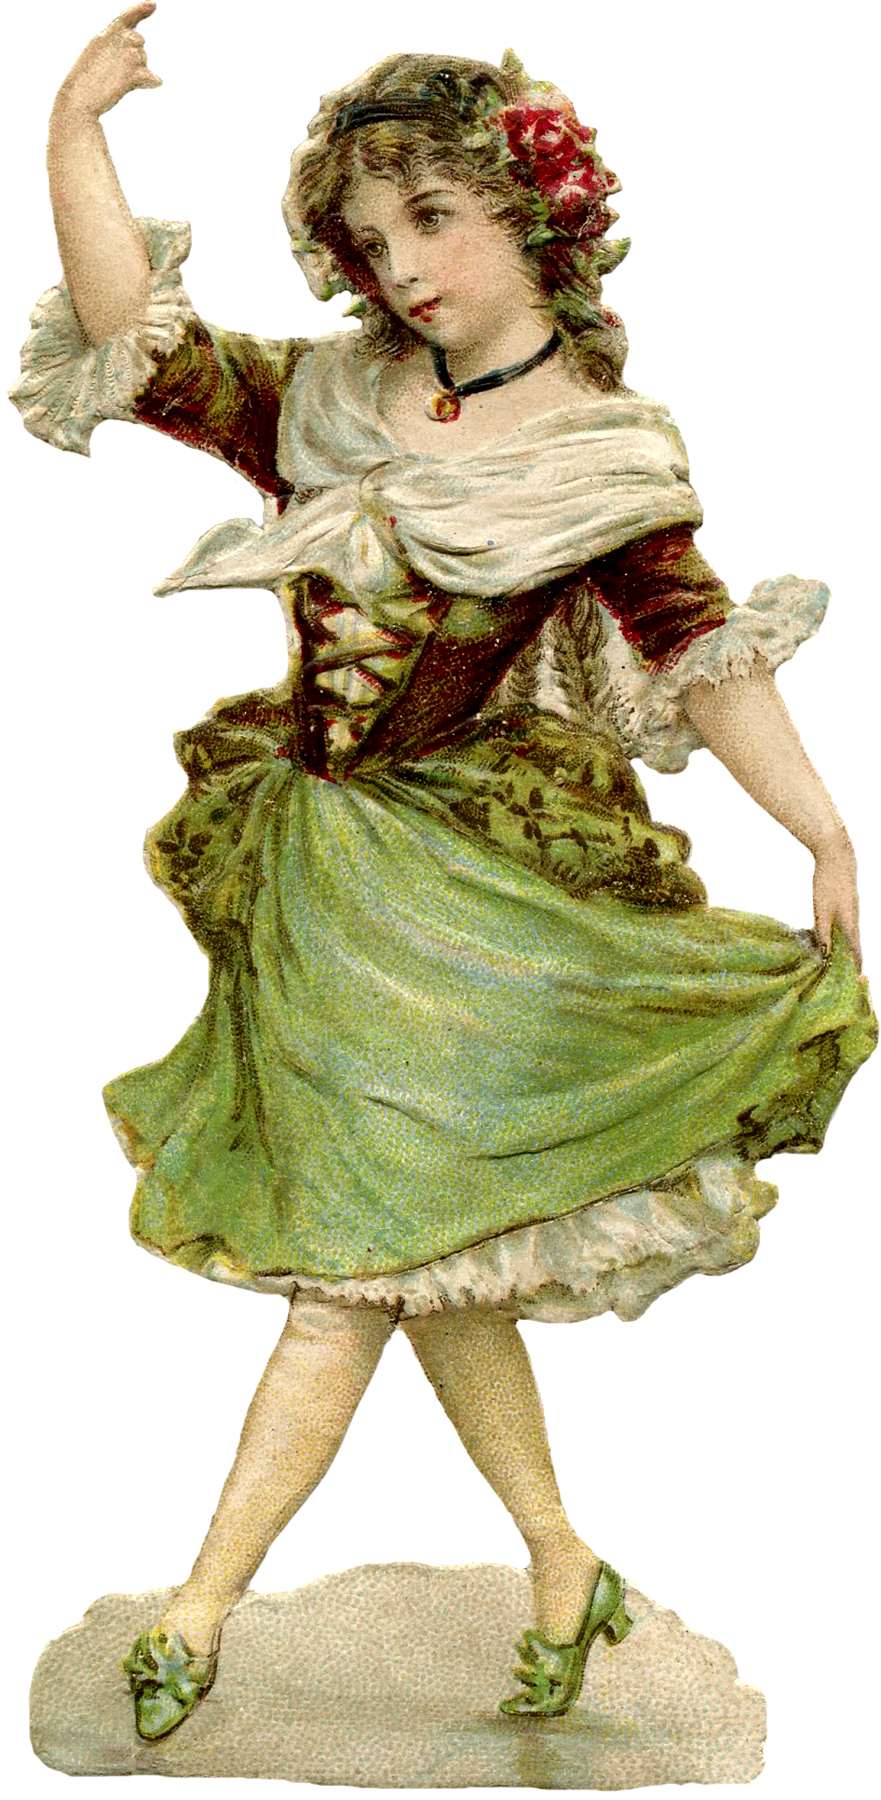 Young Dancing Girl Image